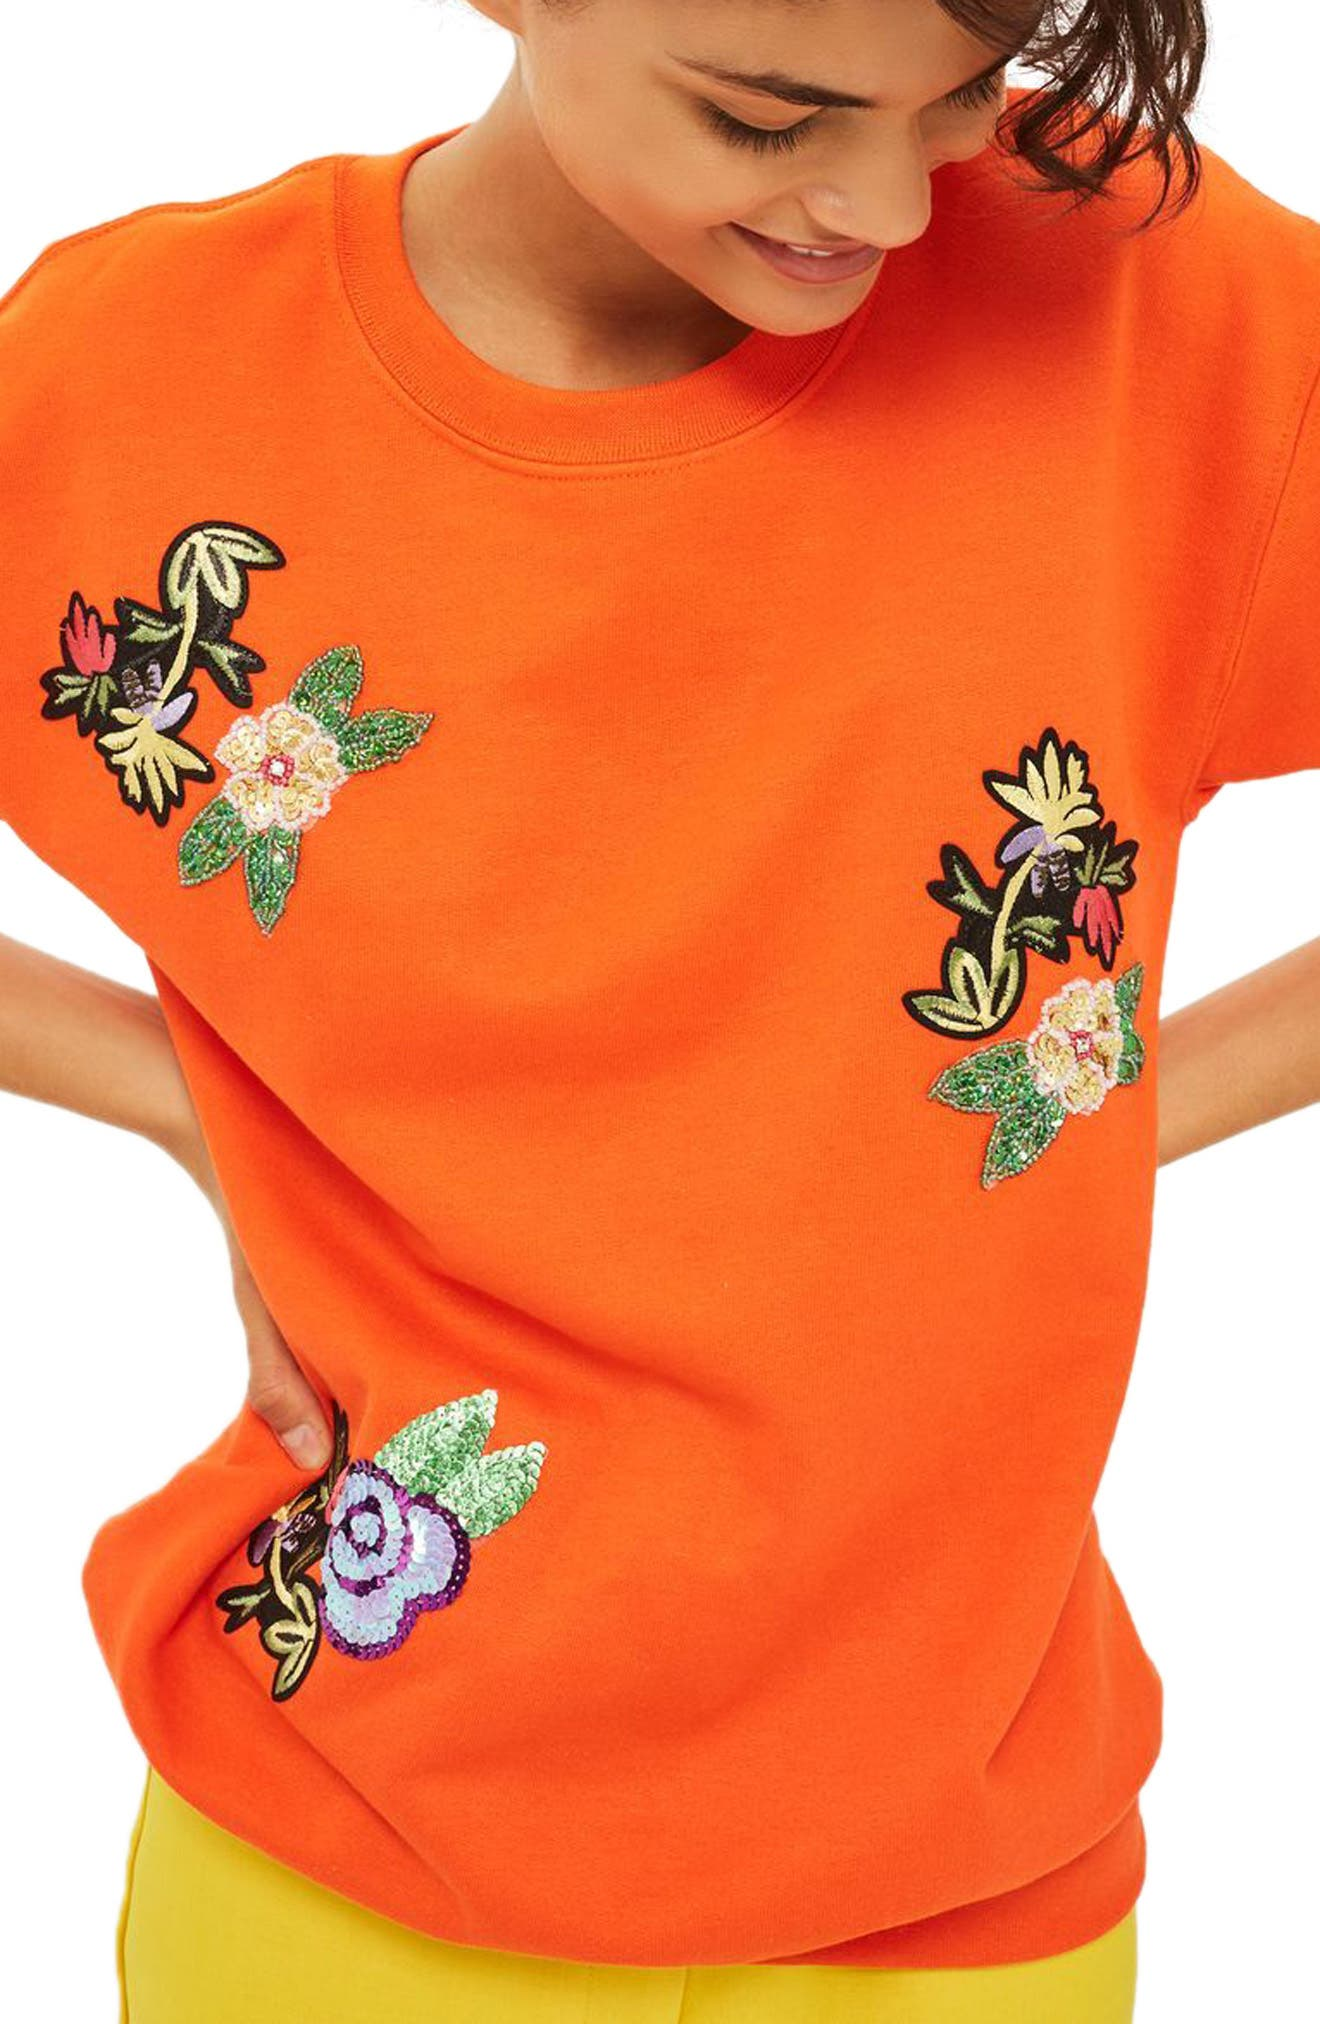 Floral Appliqué Embroidered Sweatshirt,                         Main,                         color, Orange Multi